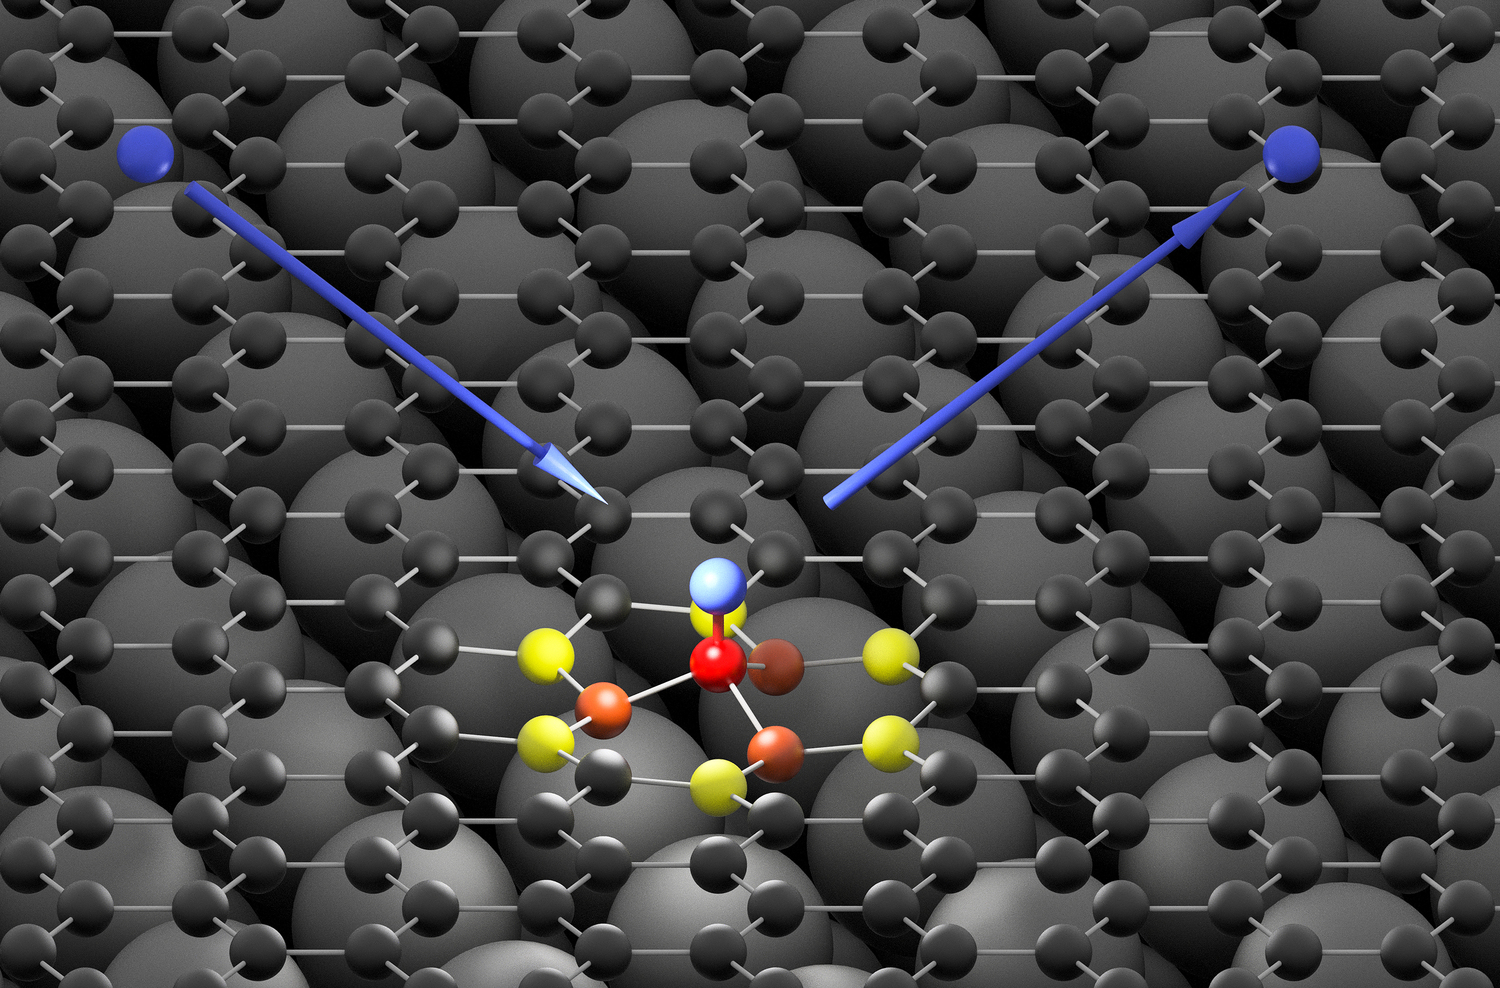 The hydrogen atom (blue) hits the graphene surface (black) and forms an ultra-fast bond with a carbon atom (red). The high energy of the impinging hydrogen atom is first absorbed by neighboring carbon atoms (orange and yellow) and then passed on to the graphene surface in form of a sound wave